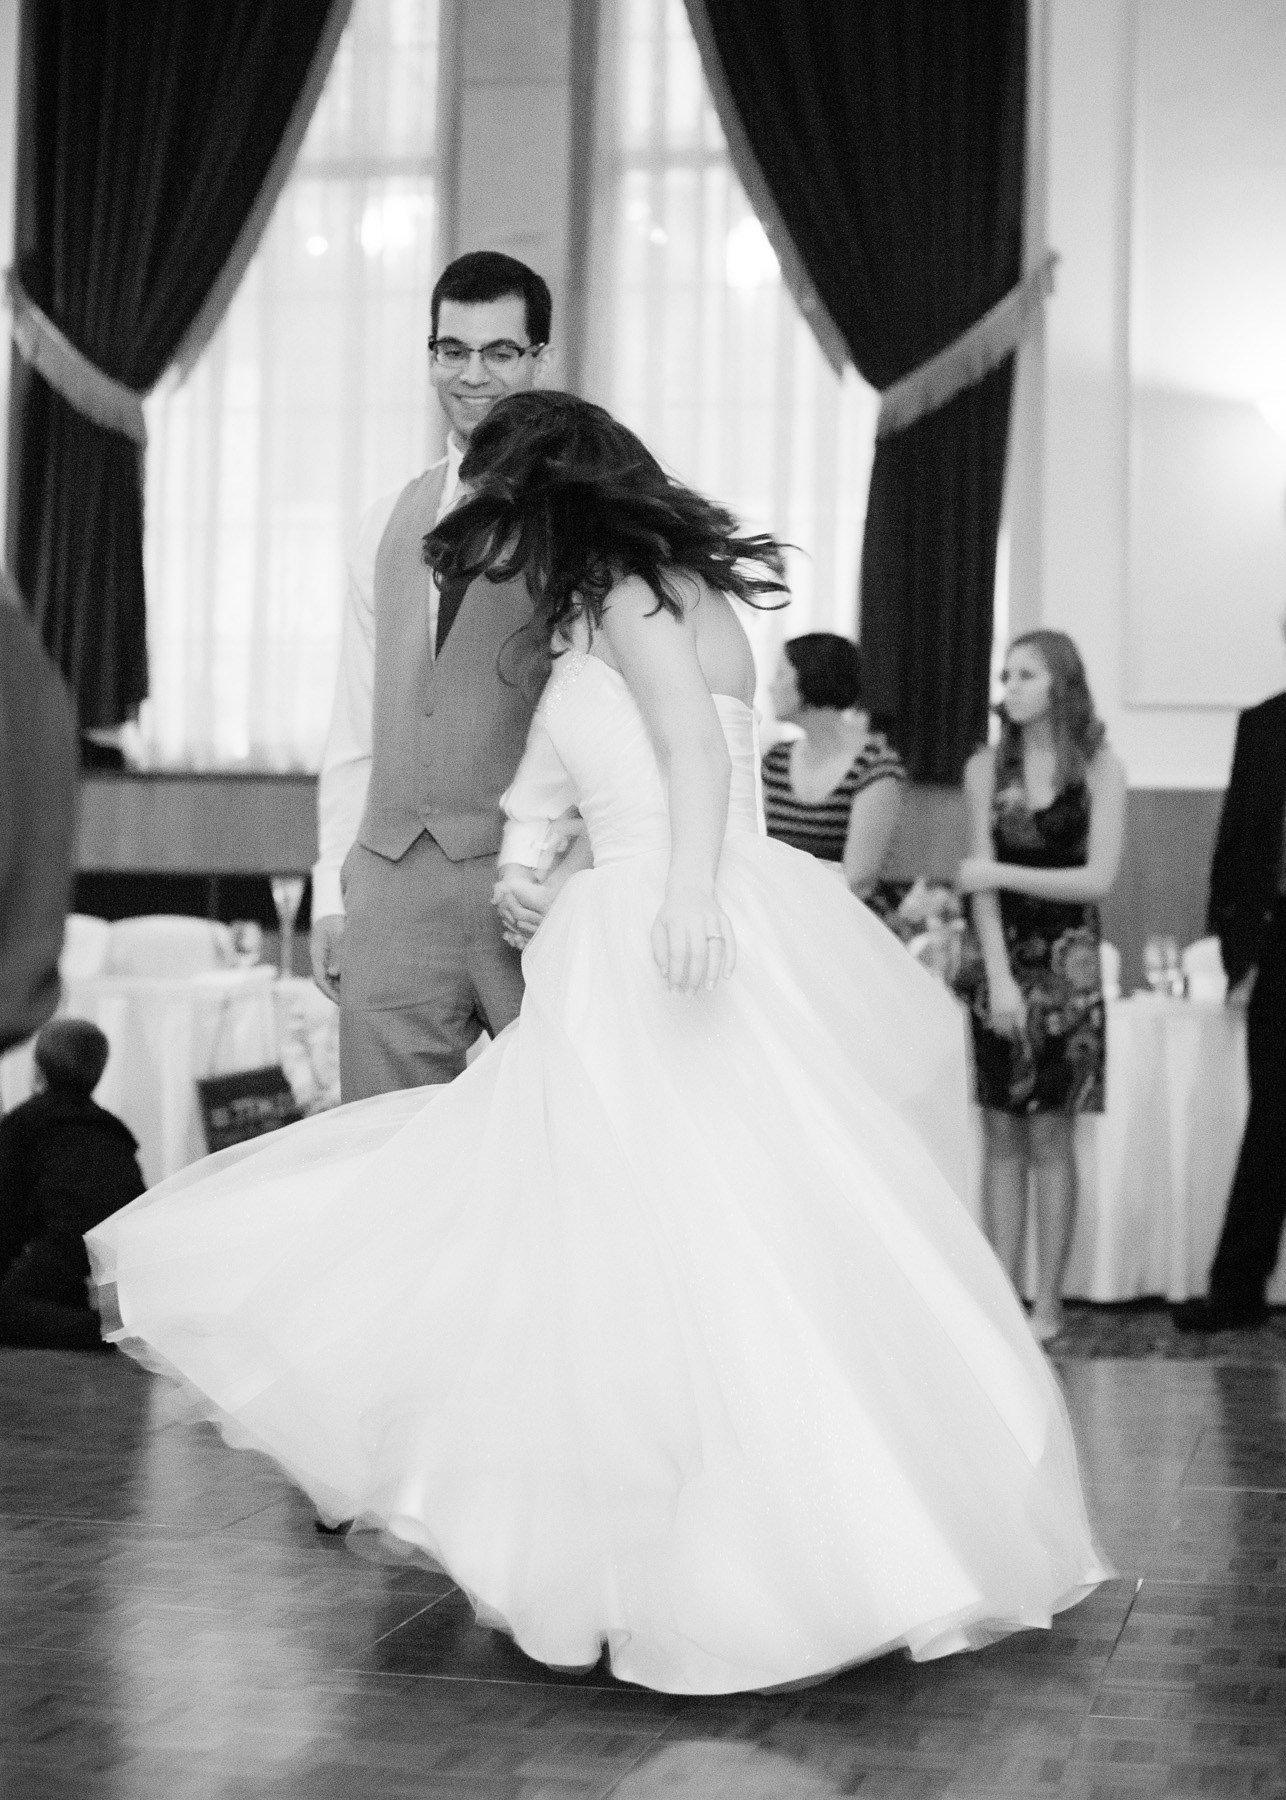 UofM_weddings_hull_melanie_reyes_070